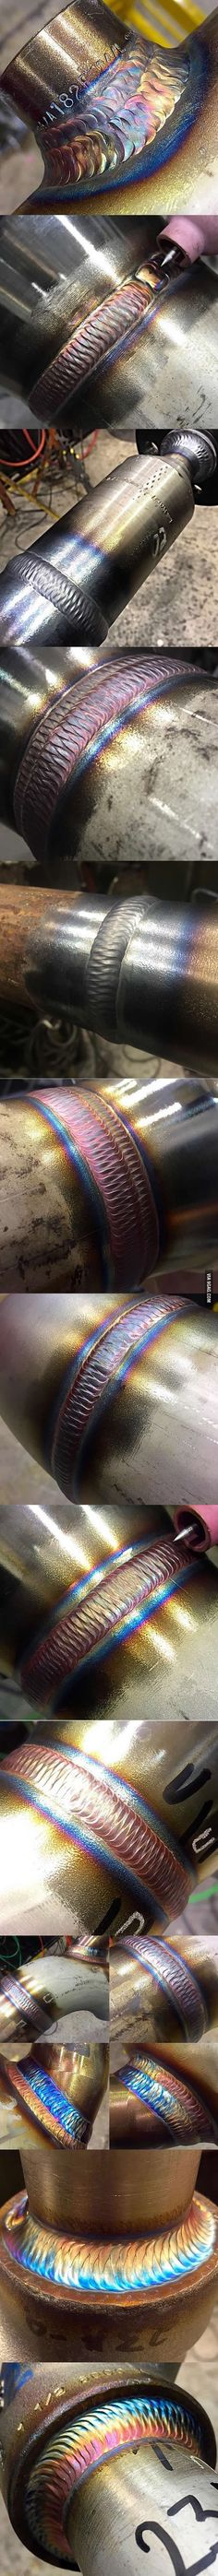 The Art Of Welds